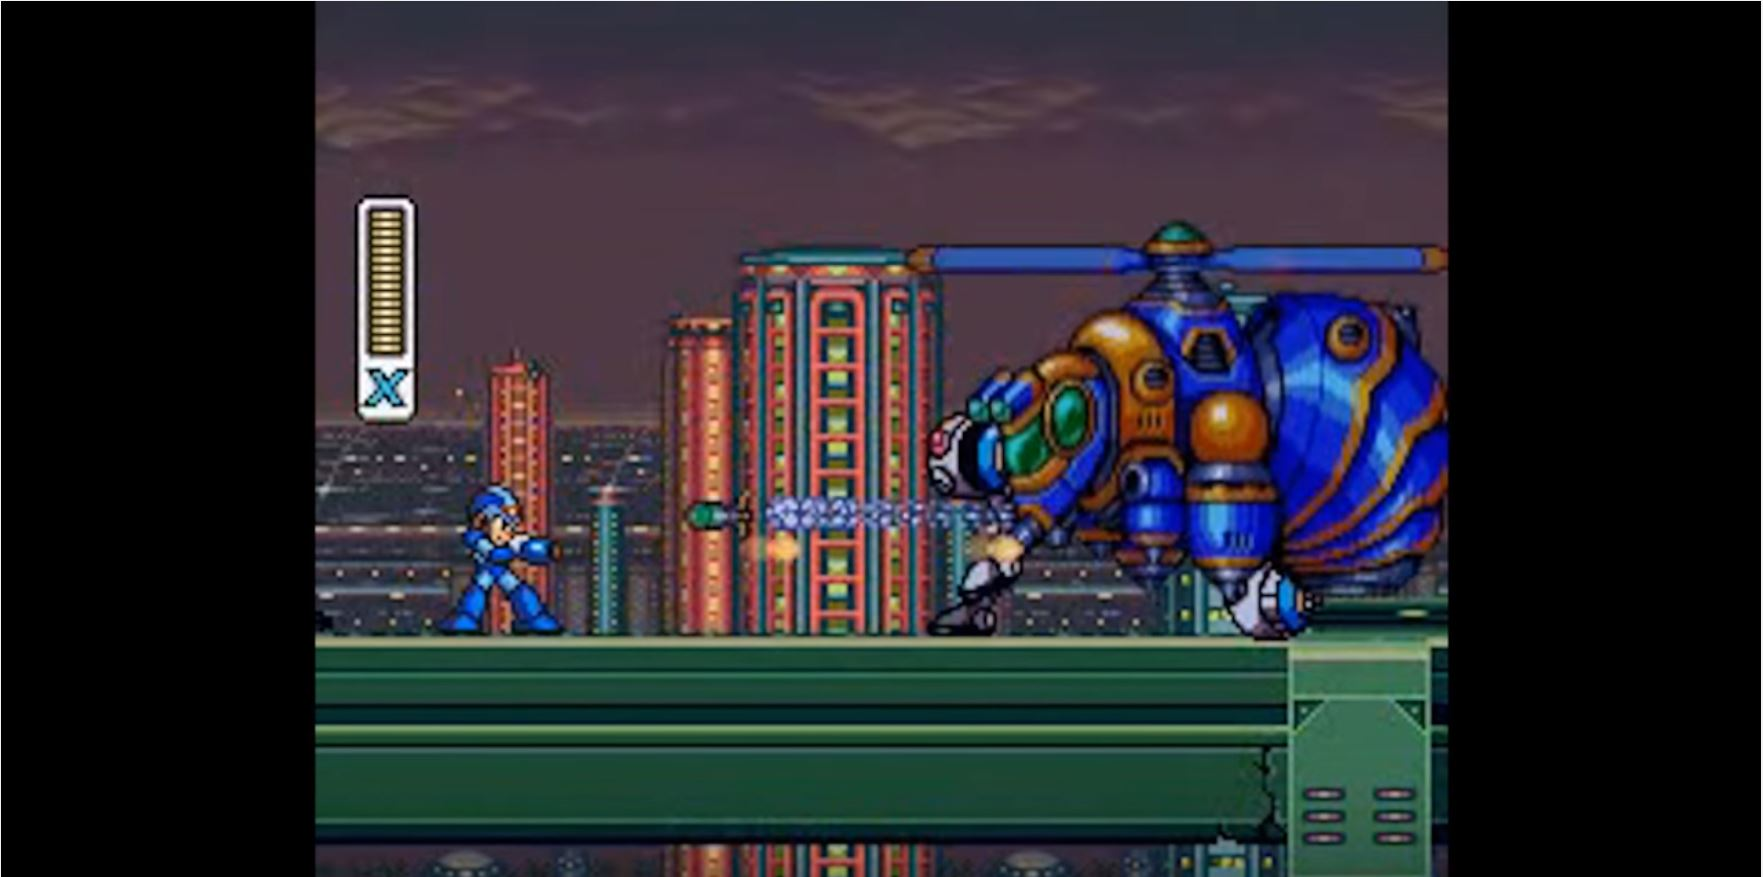 Trials... - As MegaMan combats mini bosses , the game designers have used a smaller, focused interaction with multiple game bosses in order to help the player realize and utilize the different mechanics available to them. A key feature of this instance is that the game designers are able to convey the solution to the interaction without the use of text or explicit means of communication. The pacing of the monsters's movements allow the player the opportunity to experiment and find the solutions themselves within a limited palette of available actions.Zero's interaction with Mega Man breaks from this dominant design model by communicating through text instead of action. Egoraptor argues that this dialogue breaks the mode of conveyance, but is warranted because Zero is used to express the theme of the game. This is close, but makes an exception for this scene in a way that may be unnecessary.I would argue that the reason Zero's introduction is not disjunctive to the rest of the game's experience is in fact because it solidifies a theme conveyed, but not explicitly stated, in the very first interactions the player has with Mega Man X.